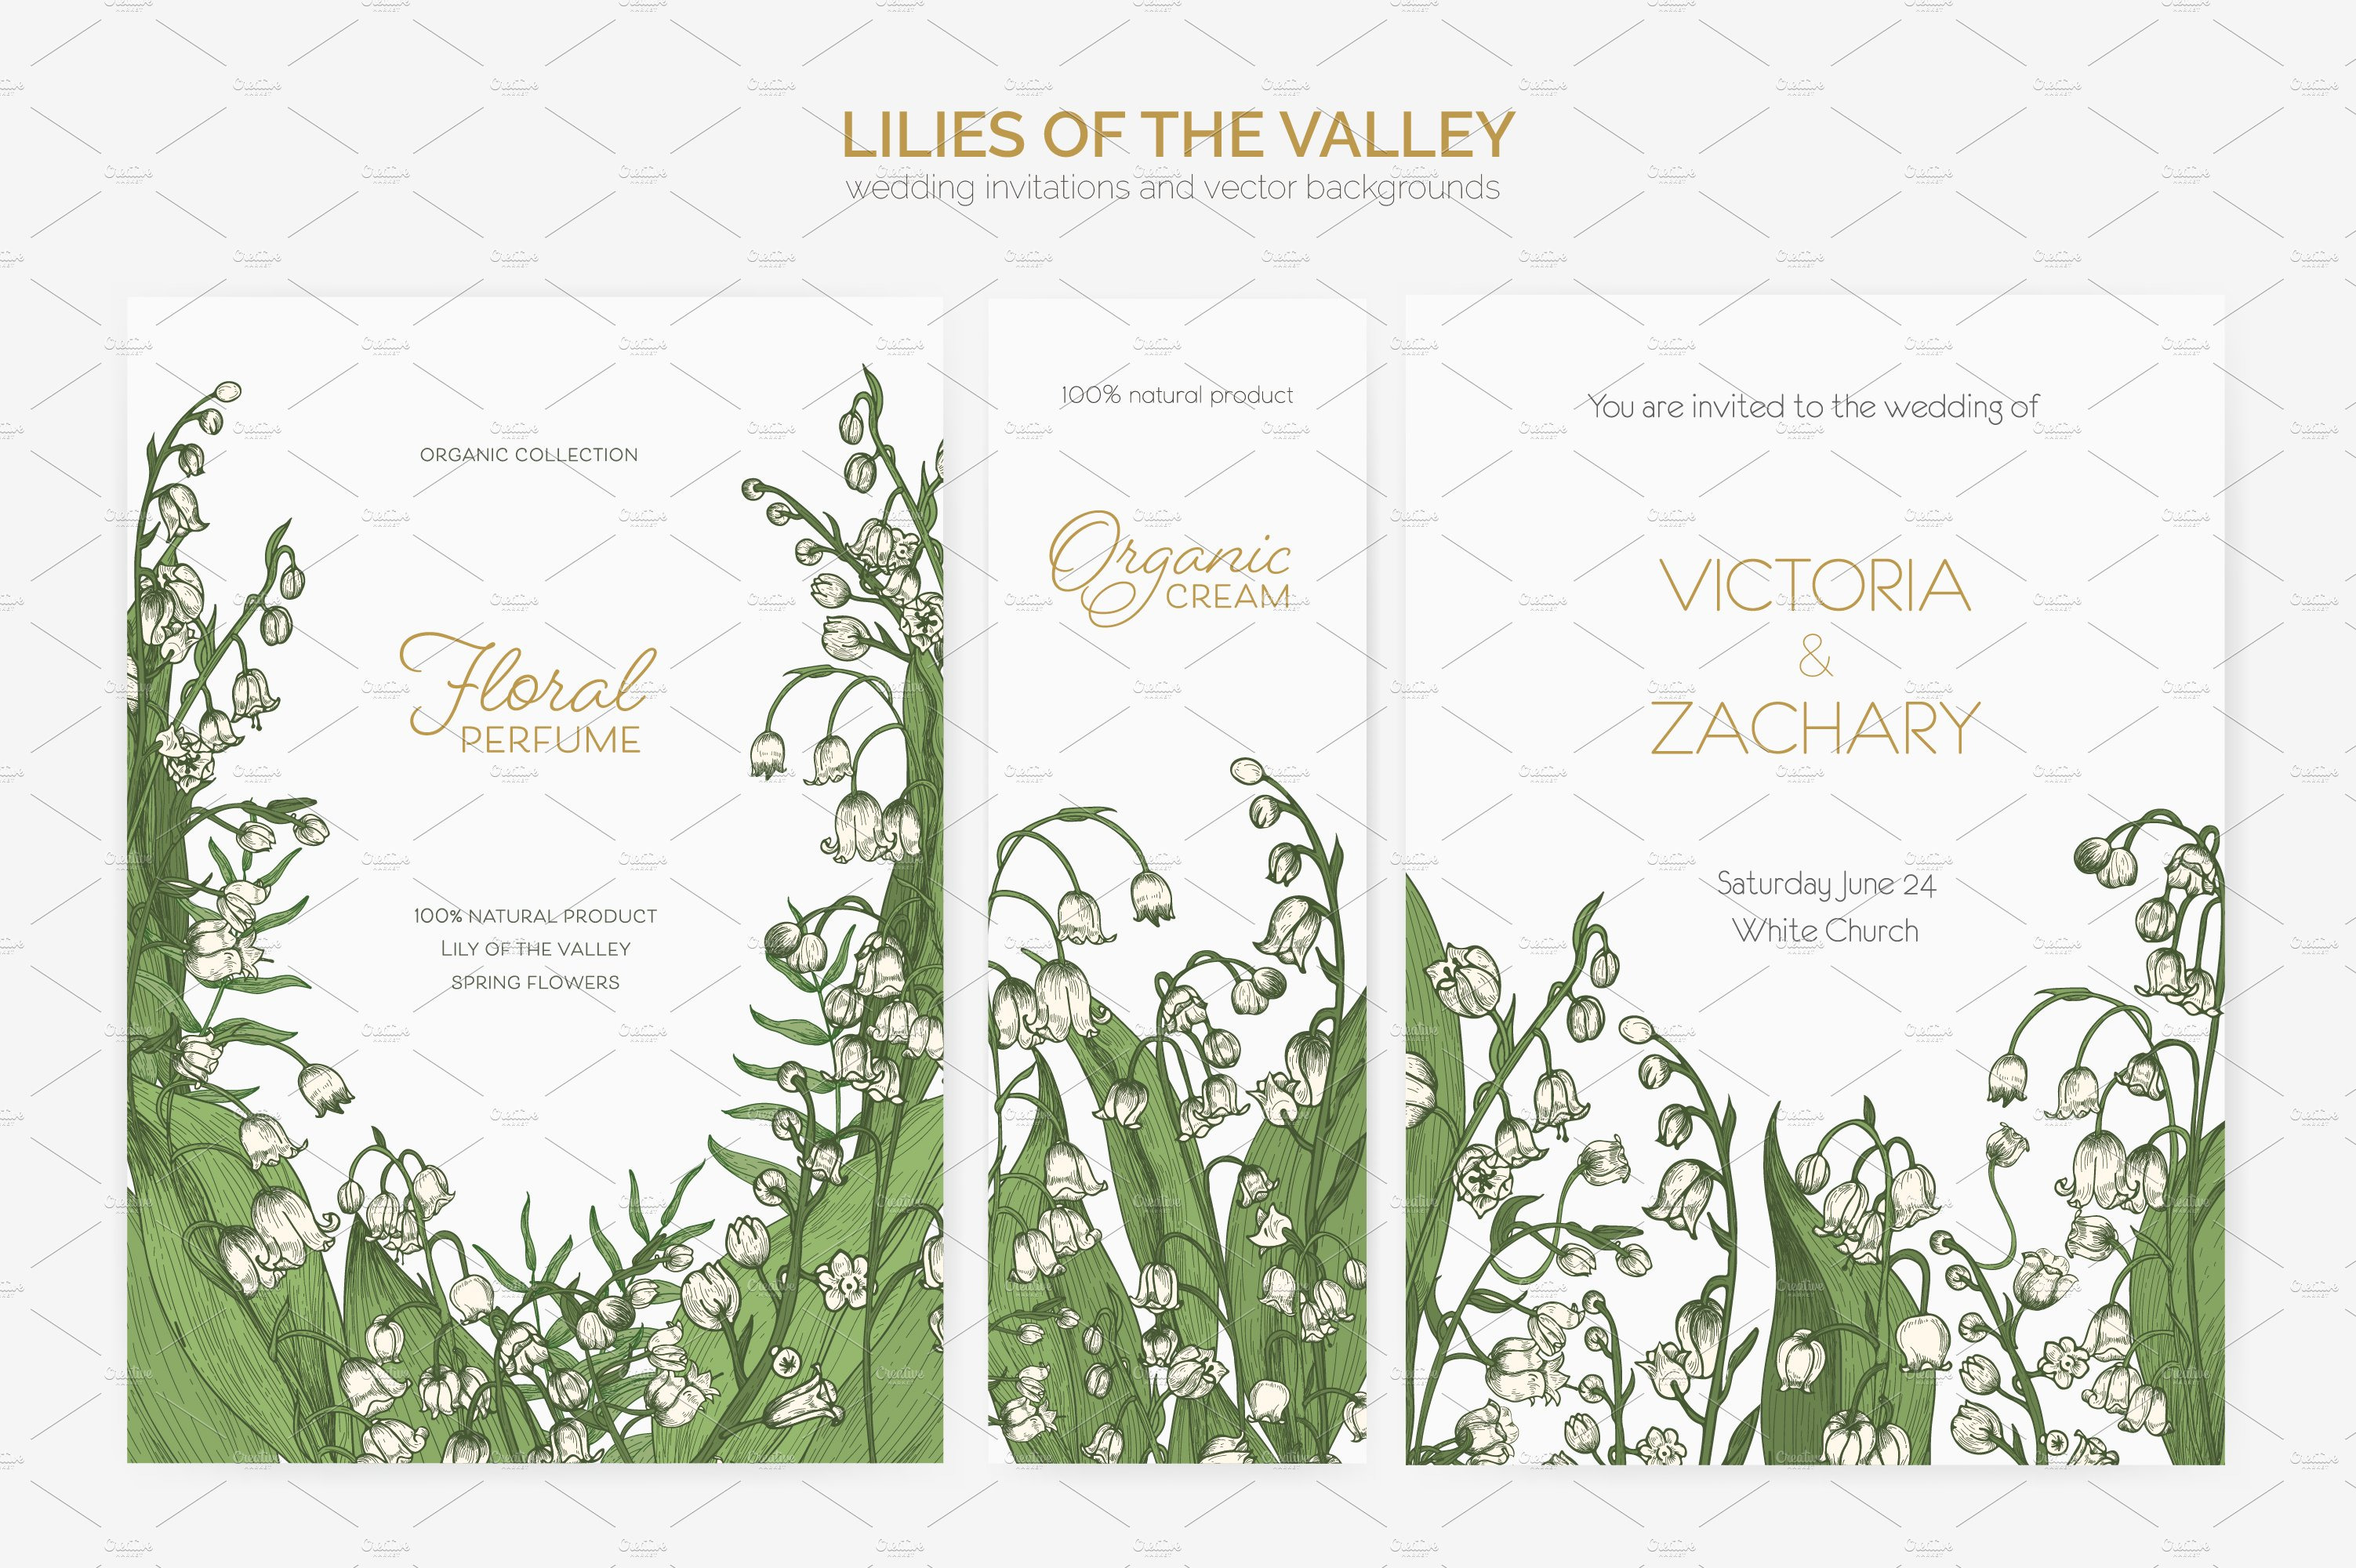 Lily of the valley flowers-backdrop ~ Illustrations ~ Creative Market